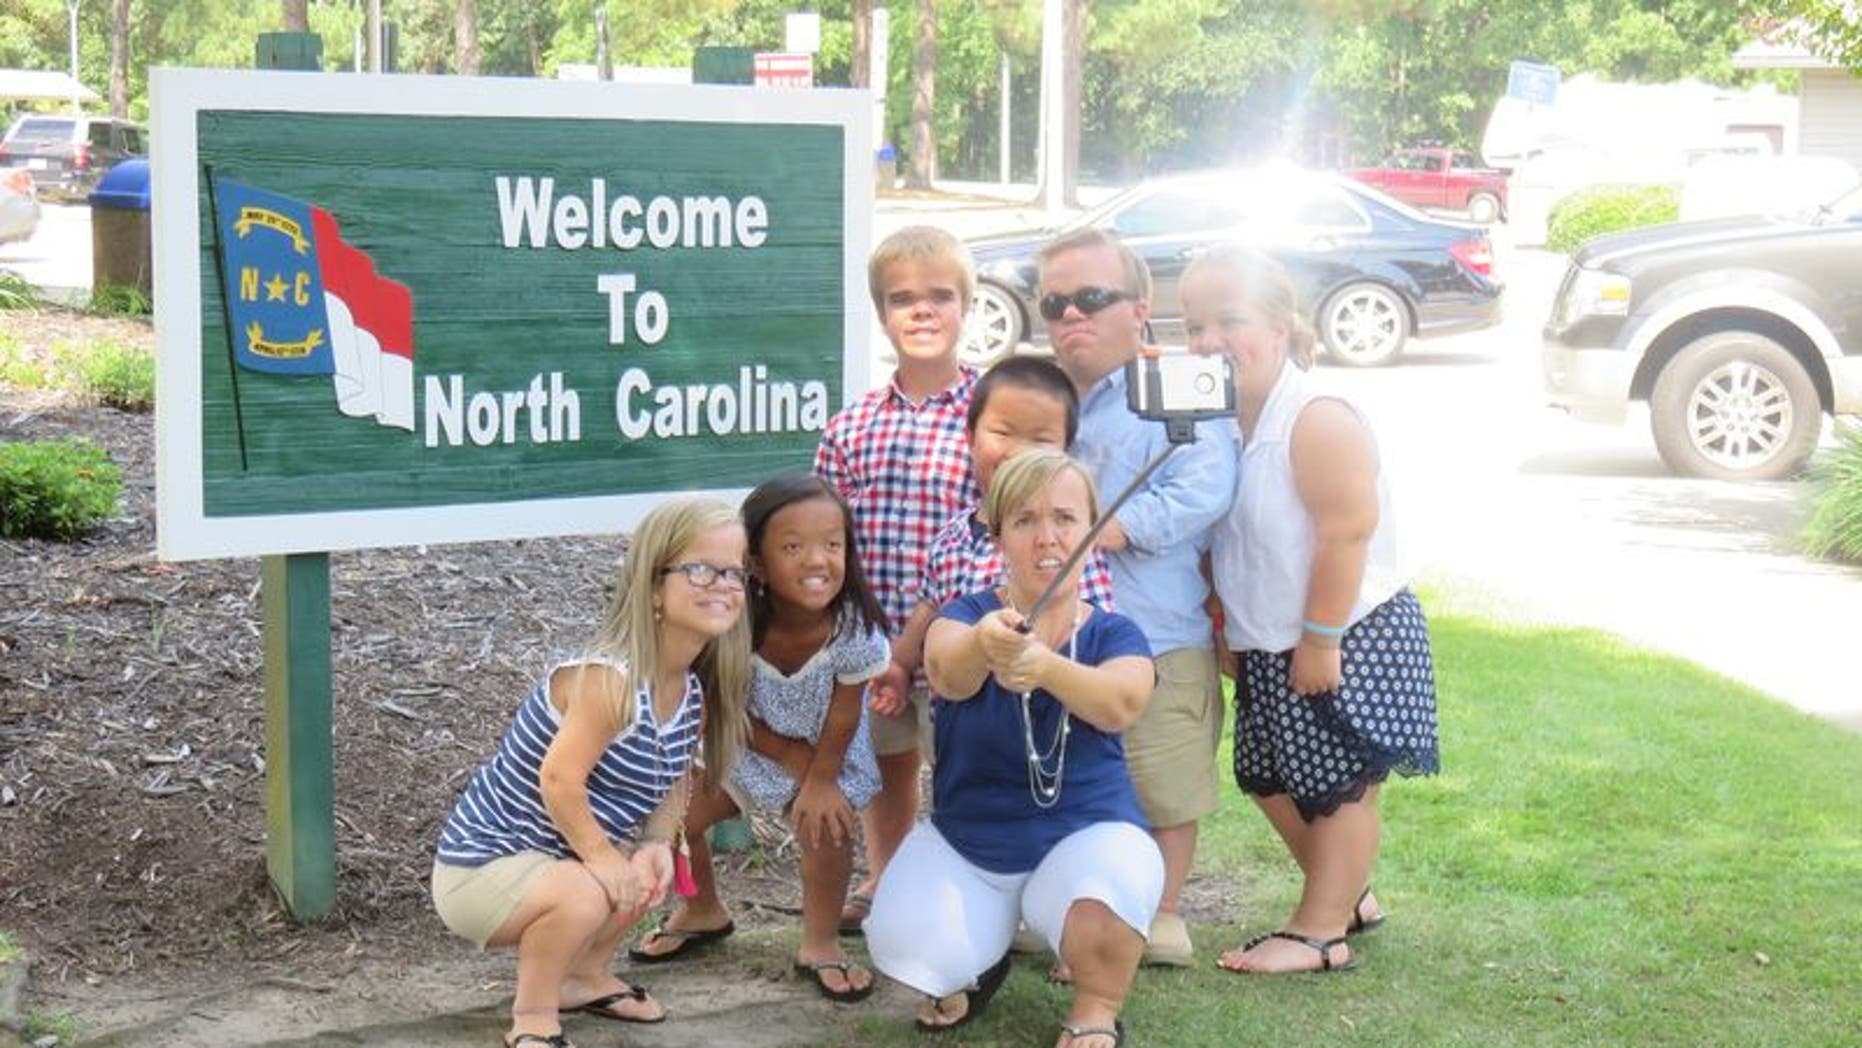 The Johnston family taking a selfie at the North Carolina state border sign.